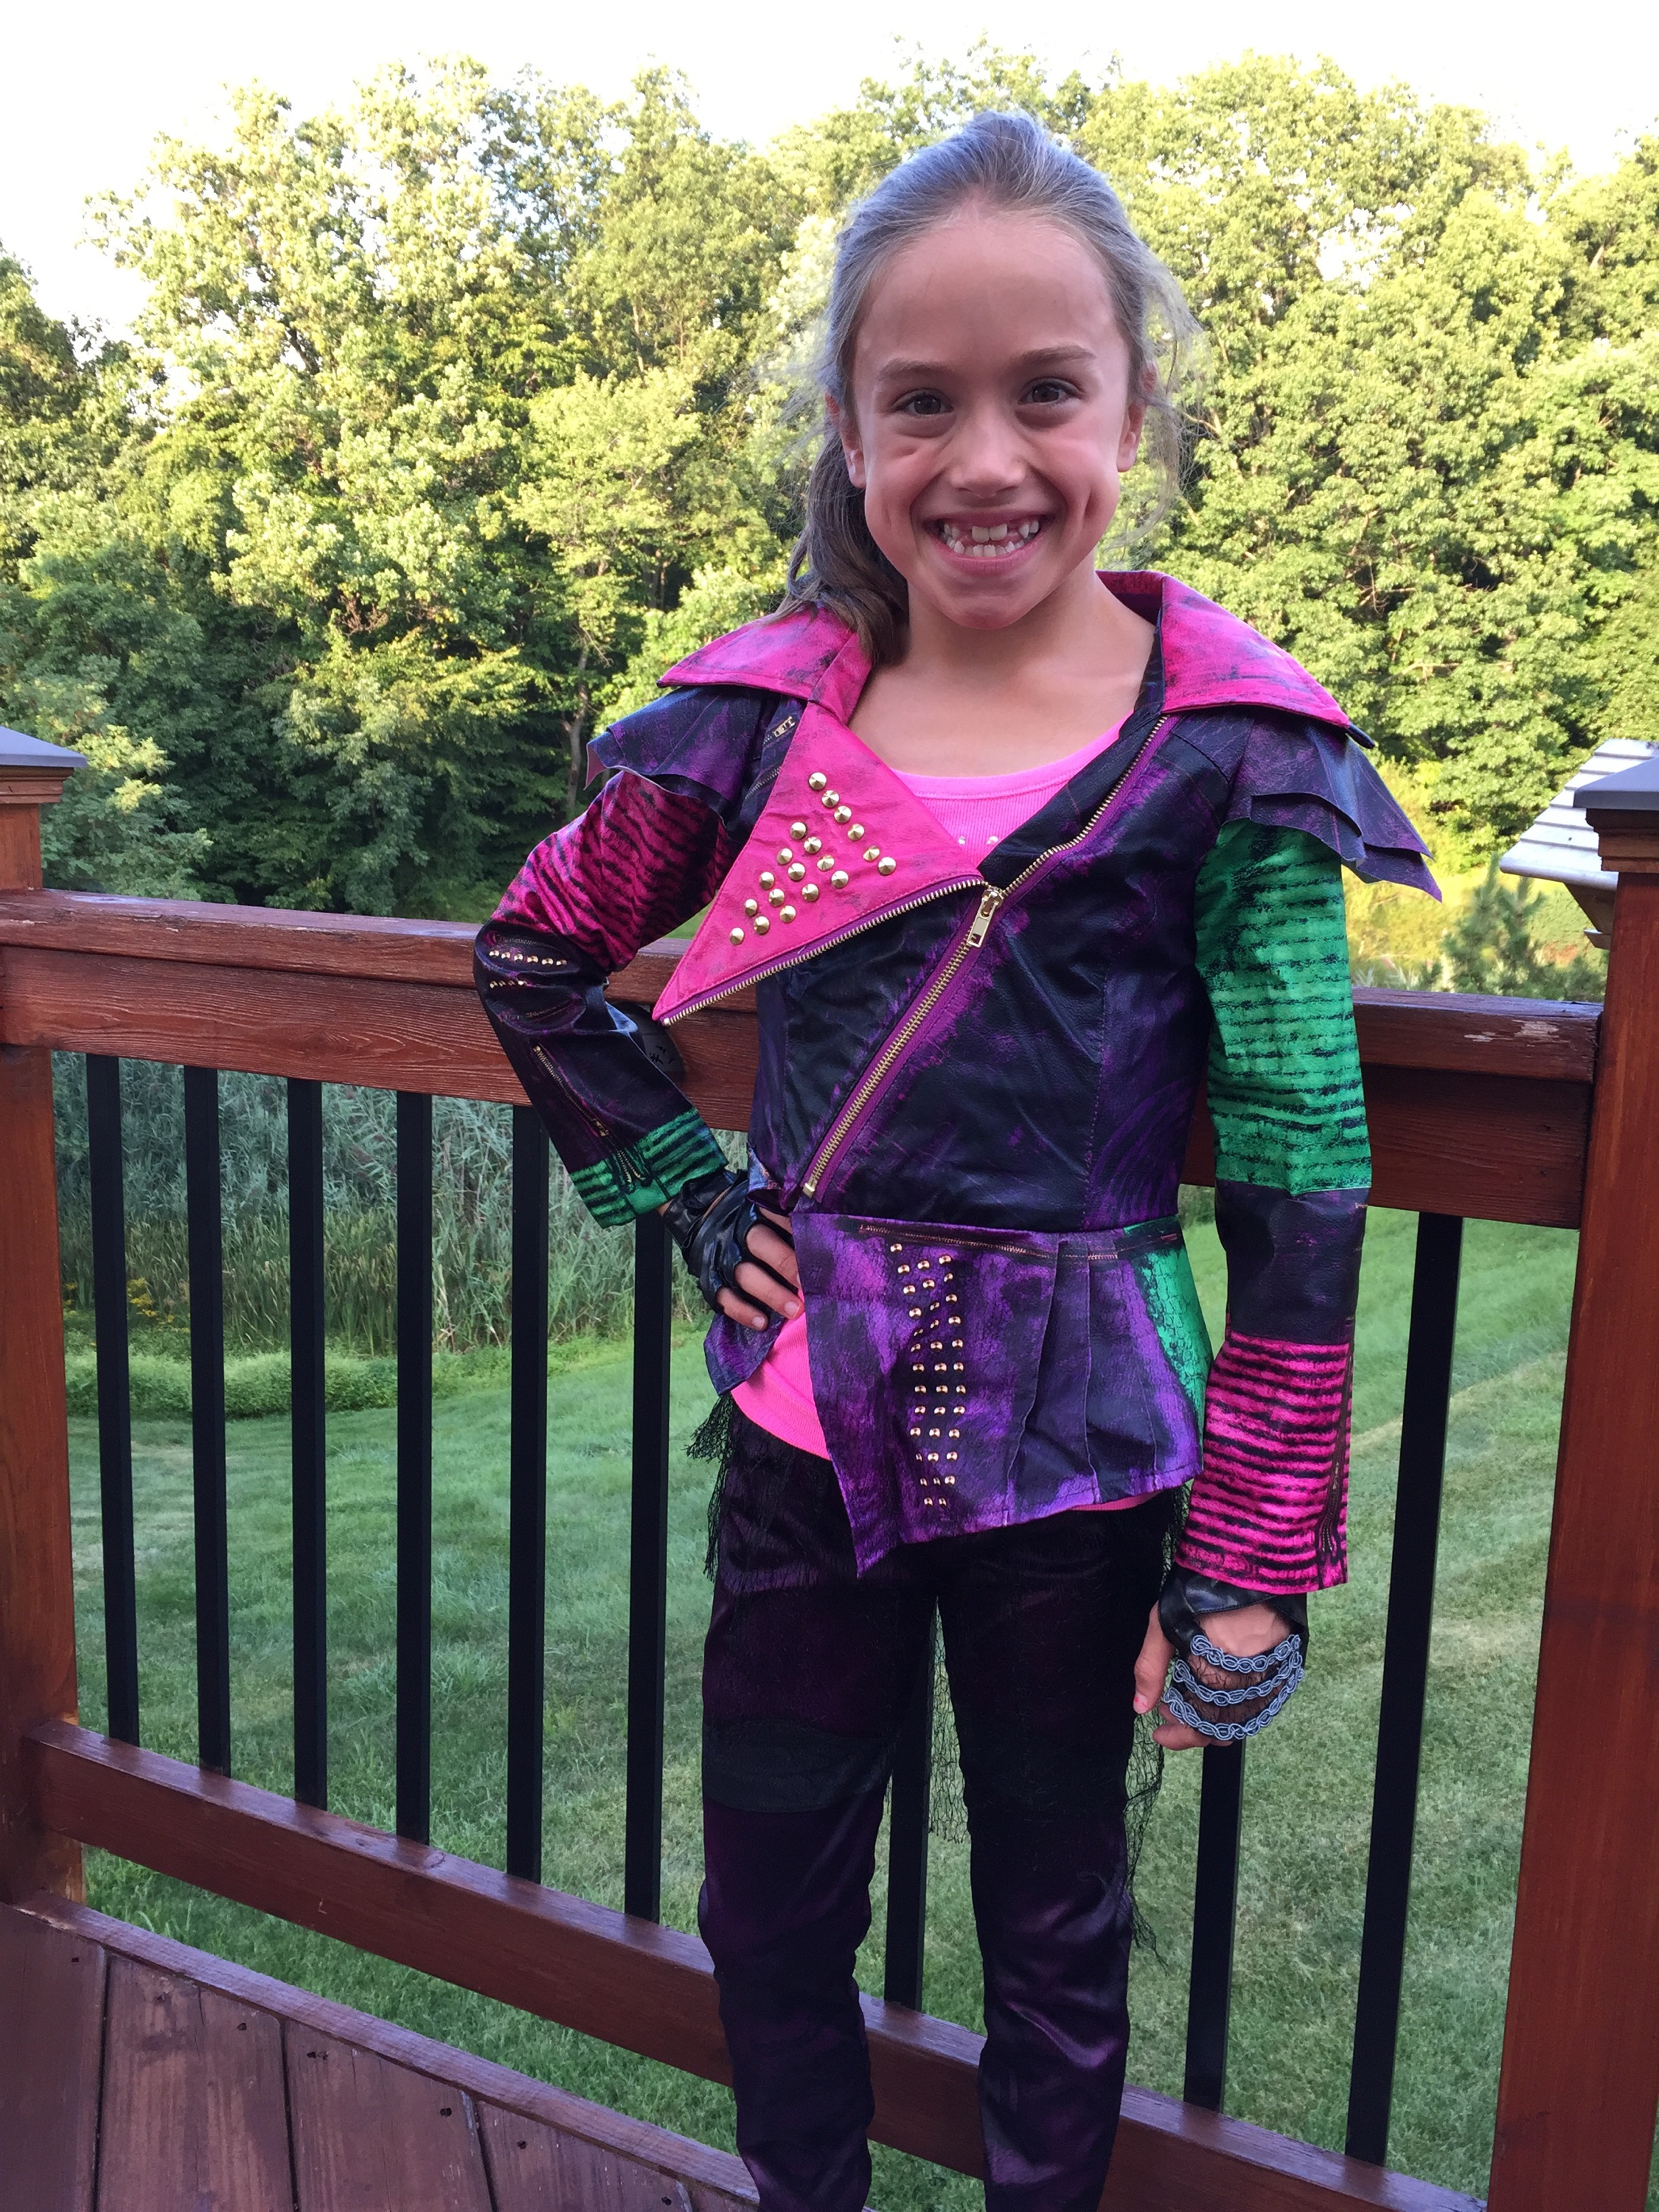 Disney Descendants Mal Costume Photos Video and Ideas for ...